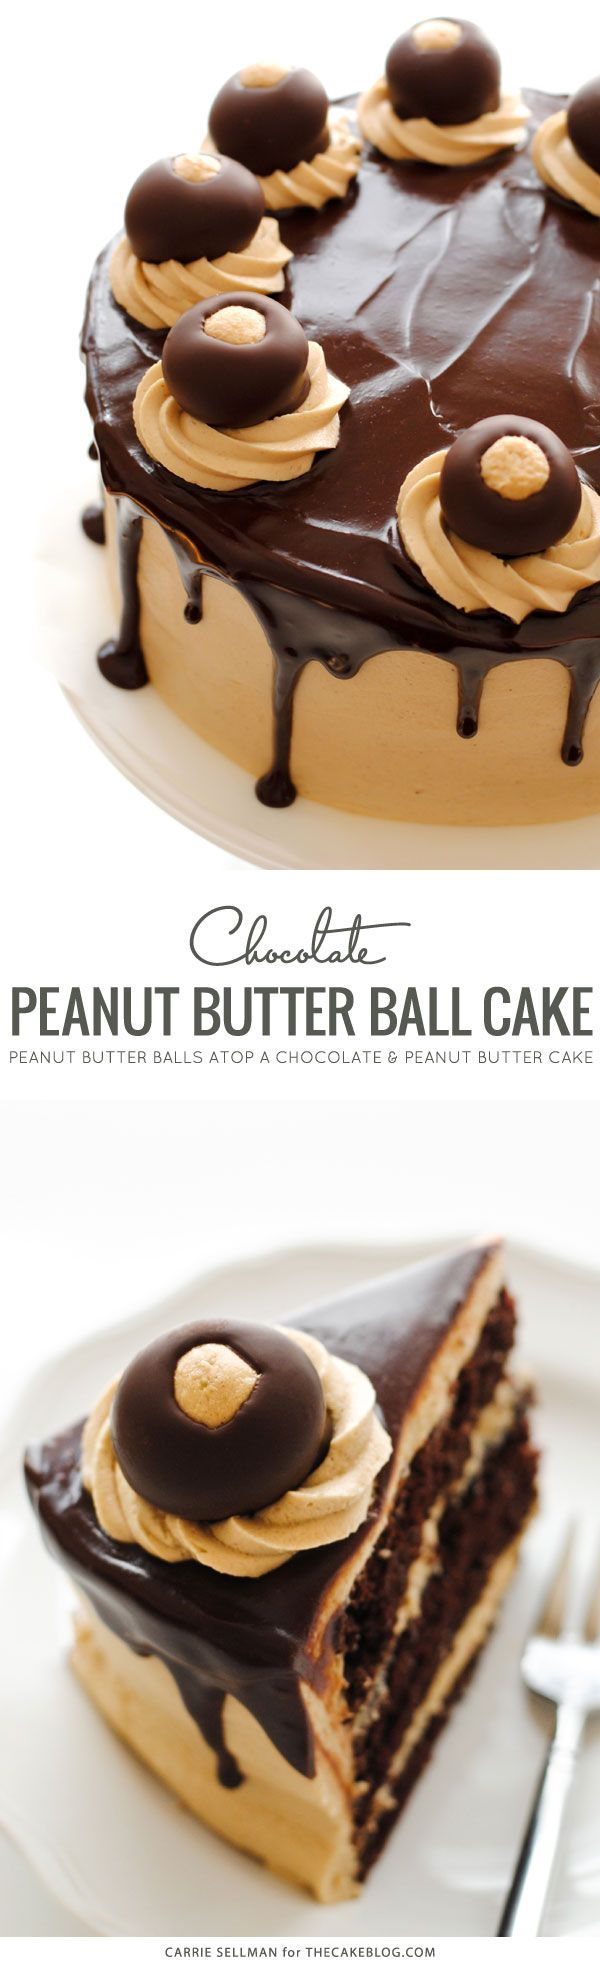 Buckeye Cake for holiday entertaining! Rich chocolate cake, creamy peanut butter frosting, chocolate ganache and chocolate peanut butter balls. | Carrie Sellman for TheCakeBlog.com